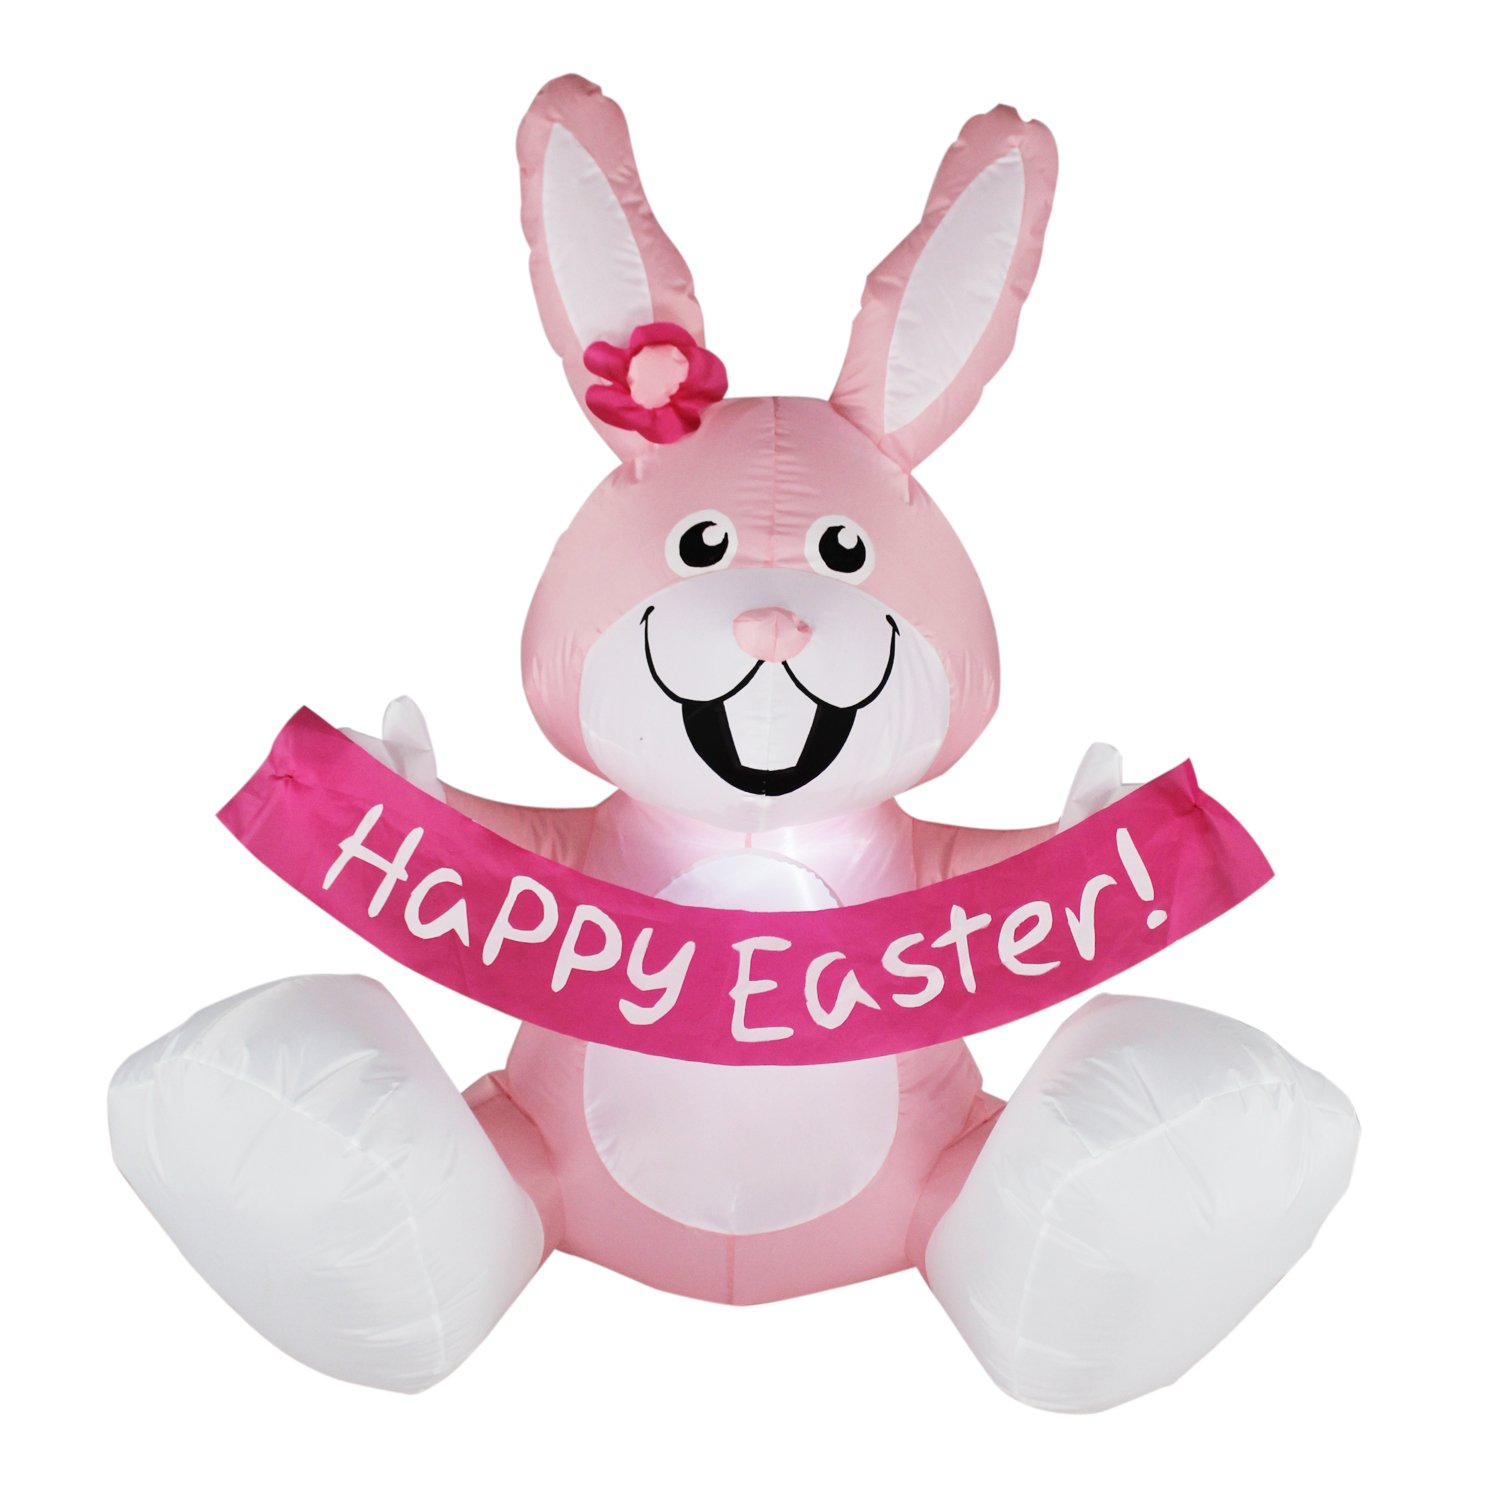 BIGJOYS SEASONBLOW 4 Ft Inflatable Happy Easter Rabbit Airblown LED Lighted Bunny Yard Indoor Outdoor Home Decoration Pink by BIGJOYS